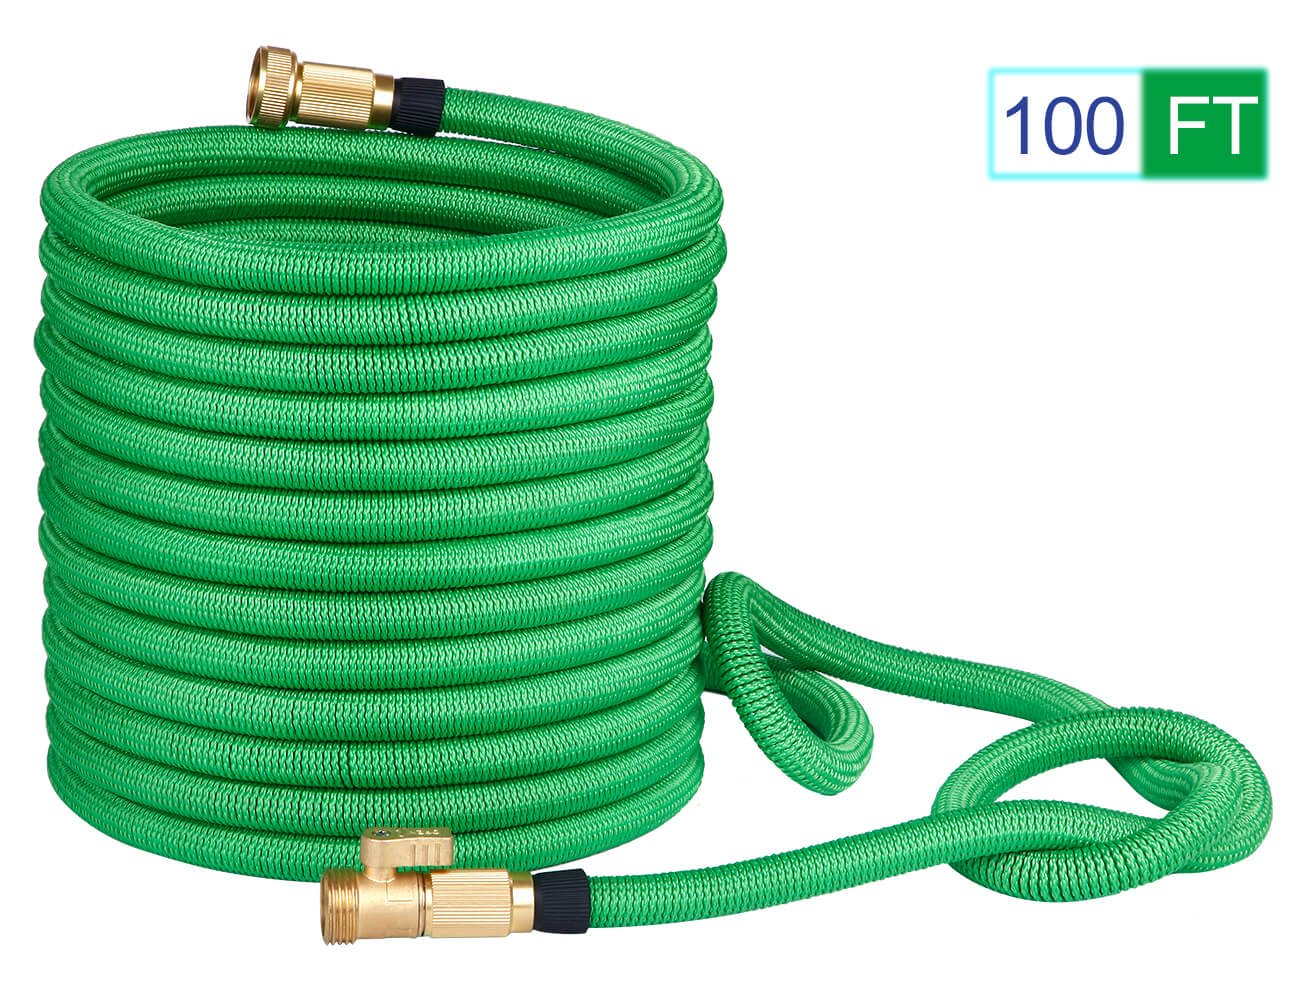 PEGZOS 2018 New Improved Expandable Garden Hoses Expanding Water Hose with Double Latex Core, Extra Density Outside Woven, Solid Brass Connector for Car Outdoor Lawn Use (100FT, Green)